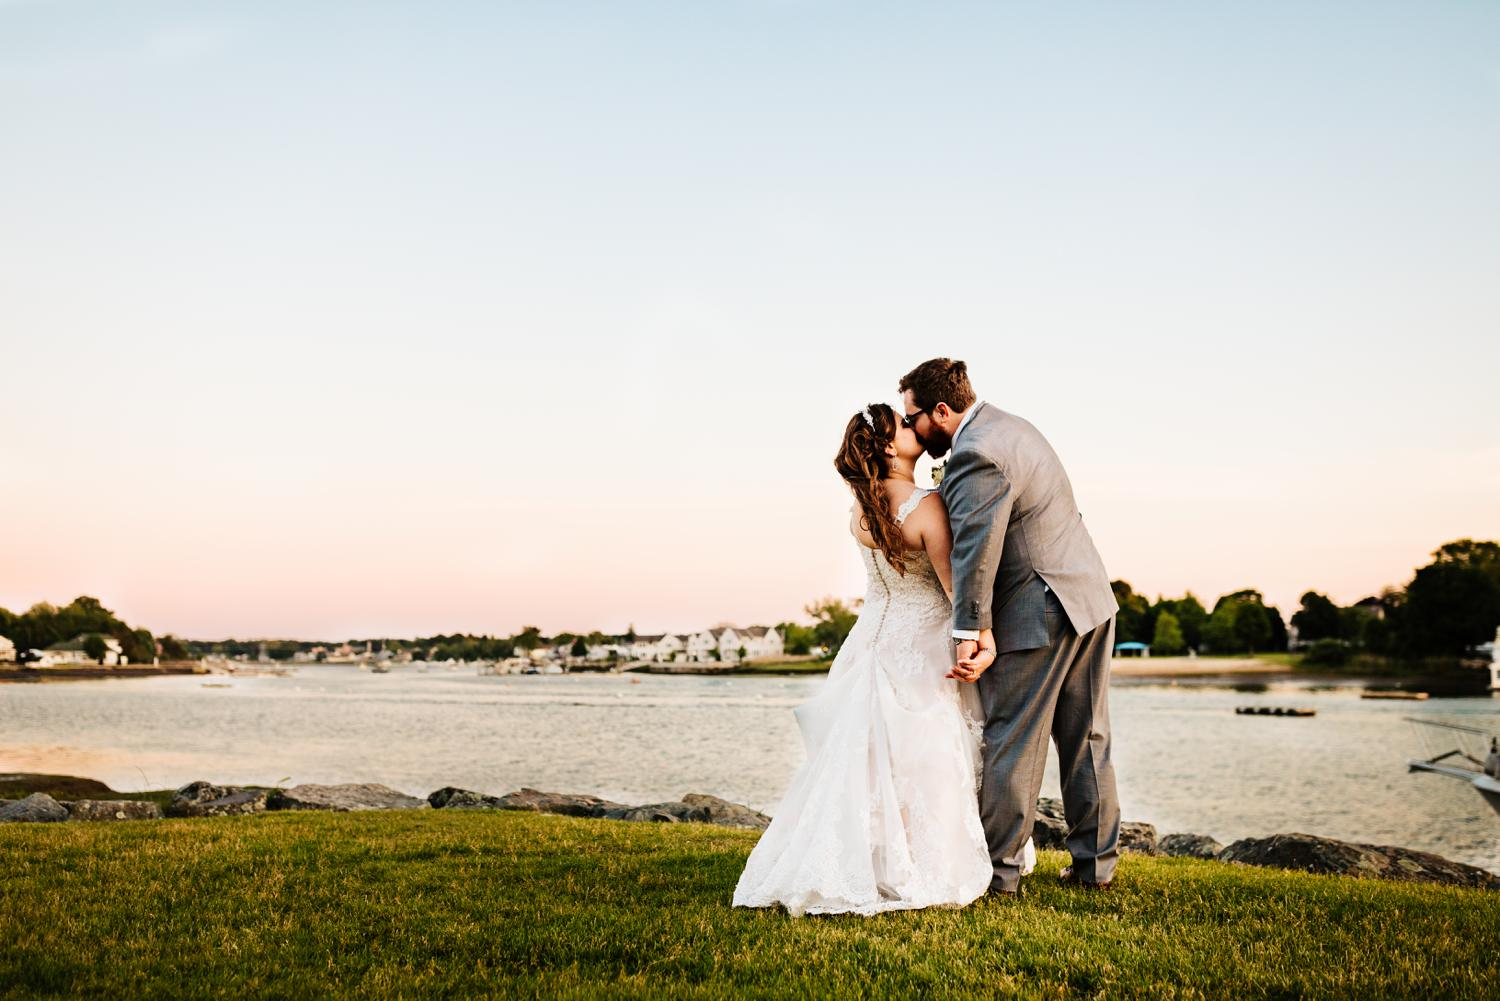 19. danversport-yacht-club-new-england-natural-wedding-photographer-andrea-van-orsouw-photography-fun-albuquerque3.jpg